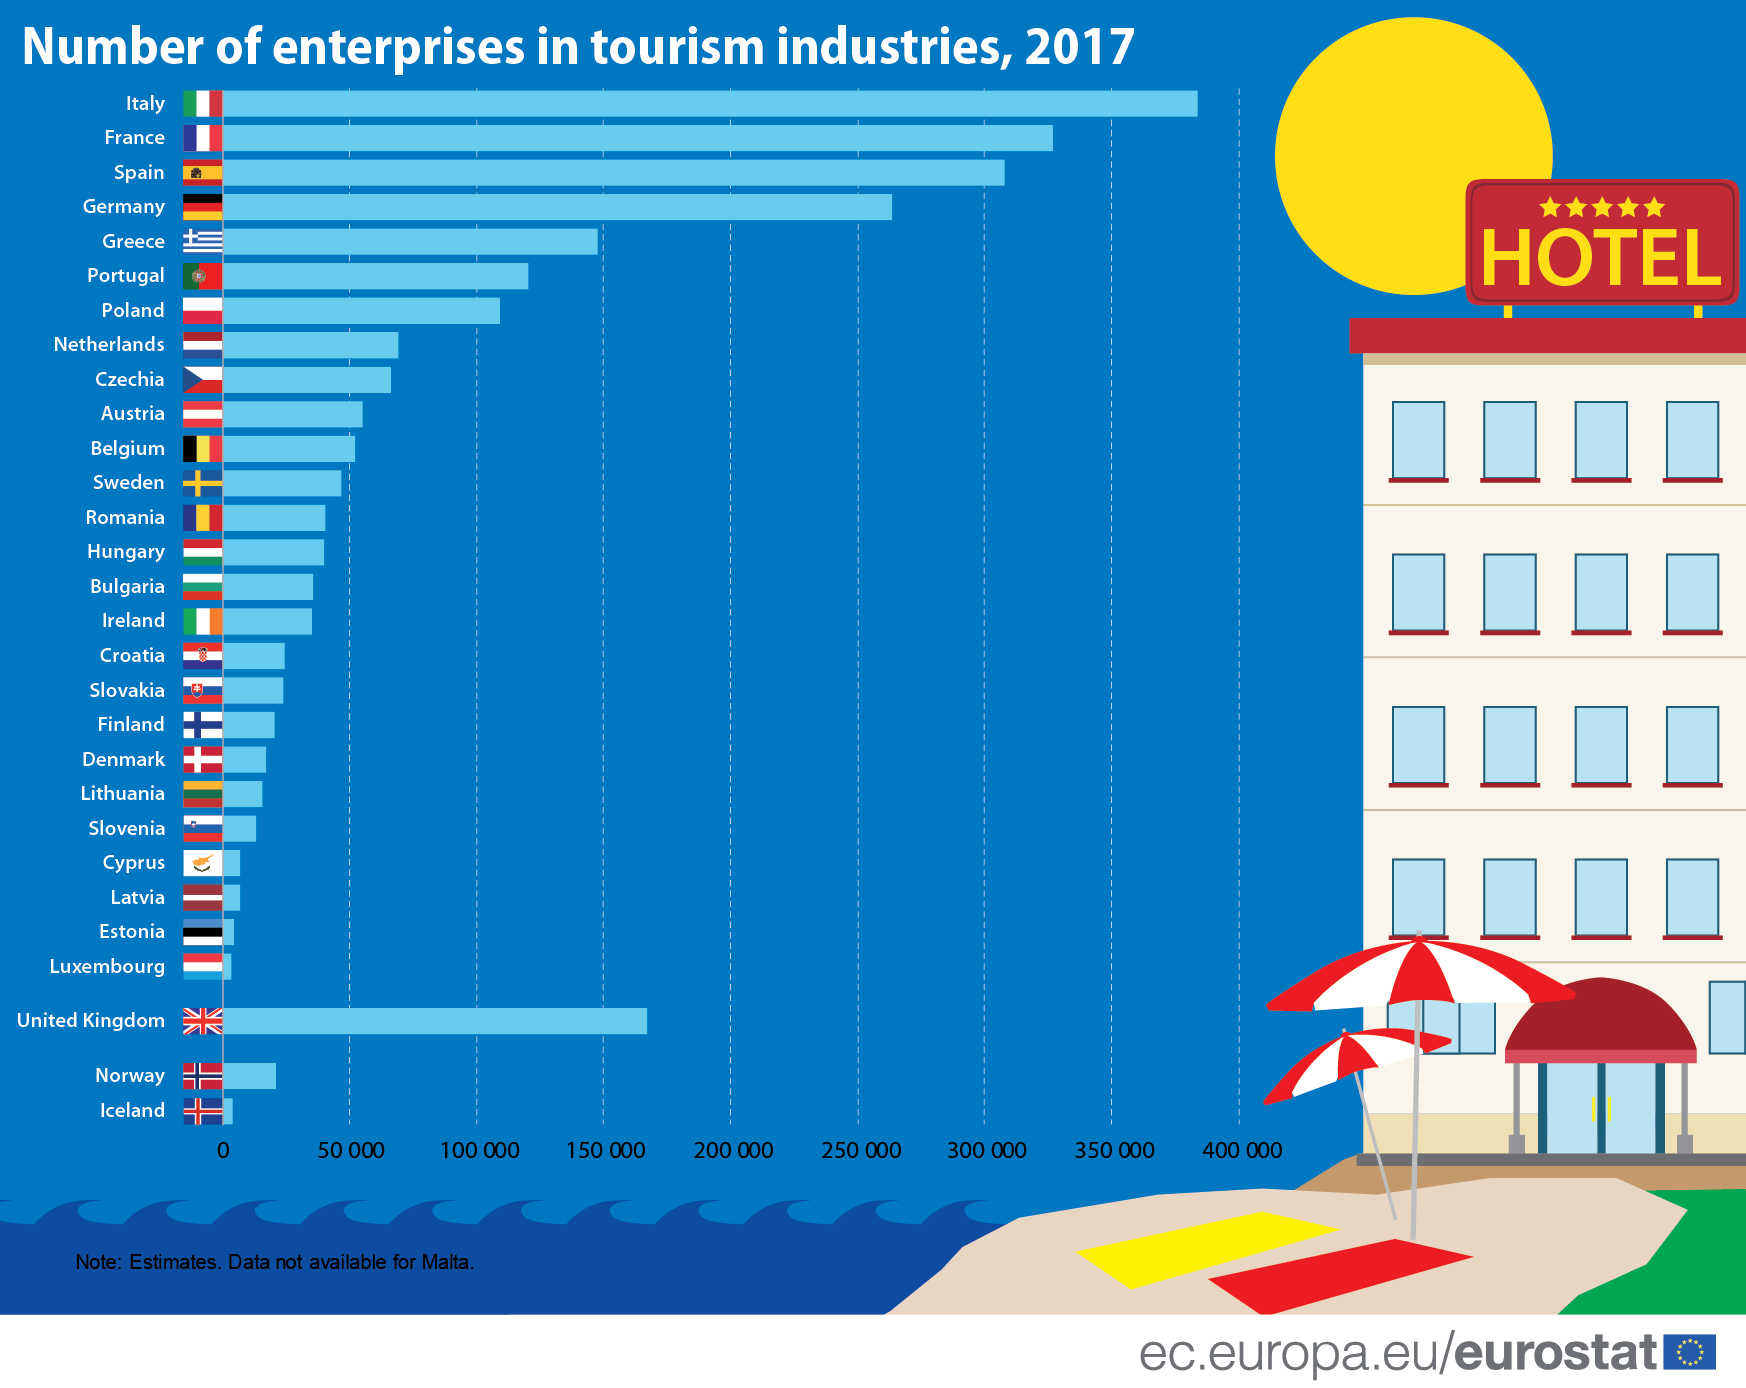 Number of enterprises in tourism industries, 2017